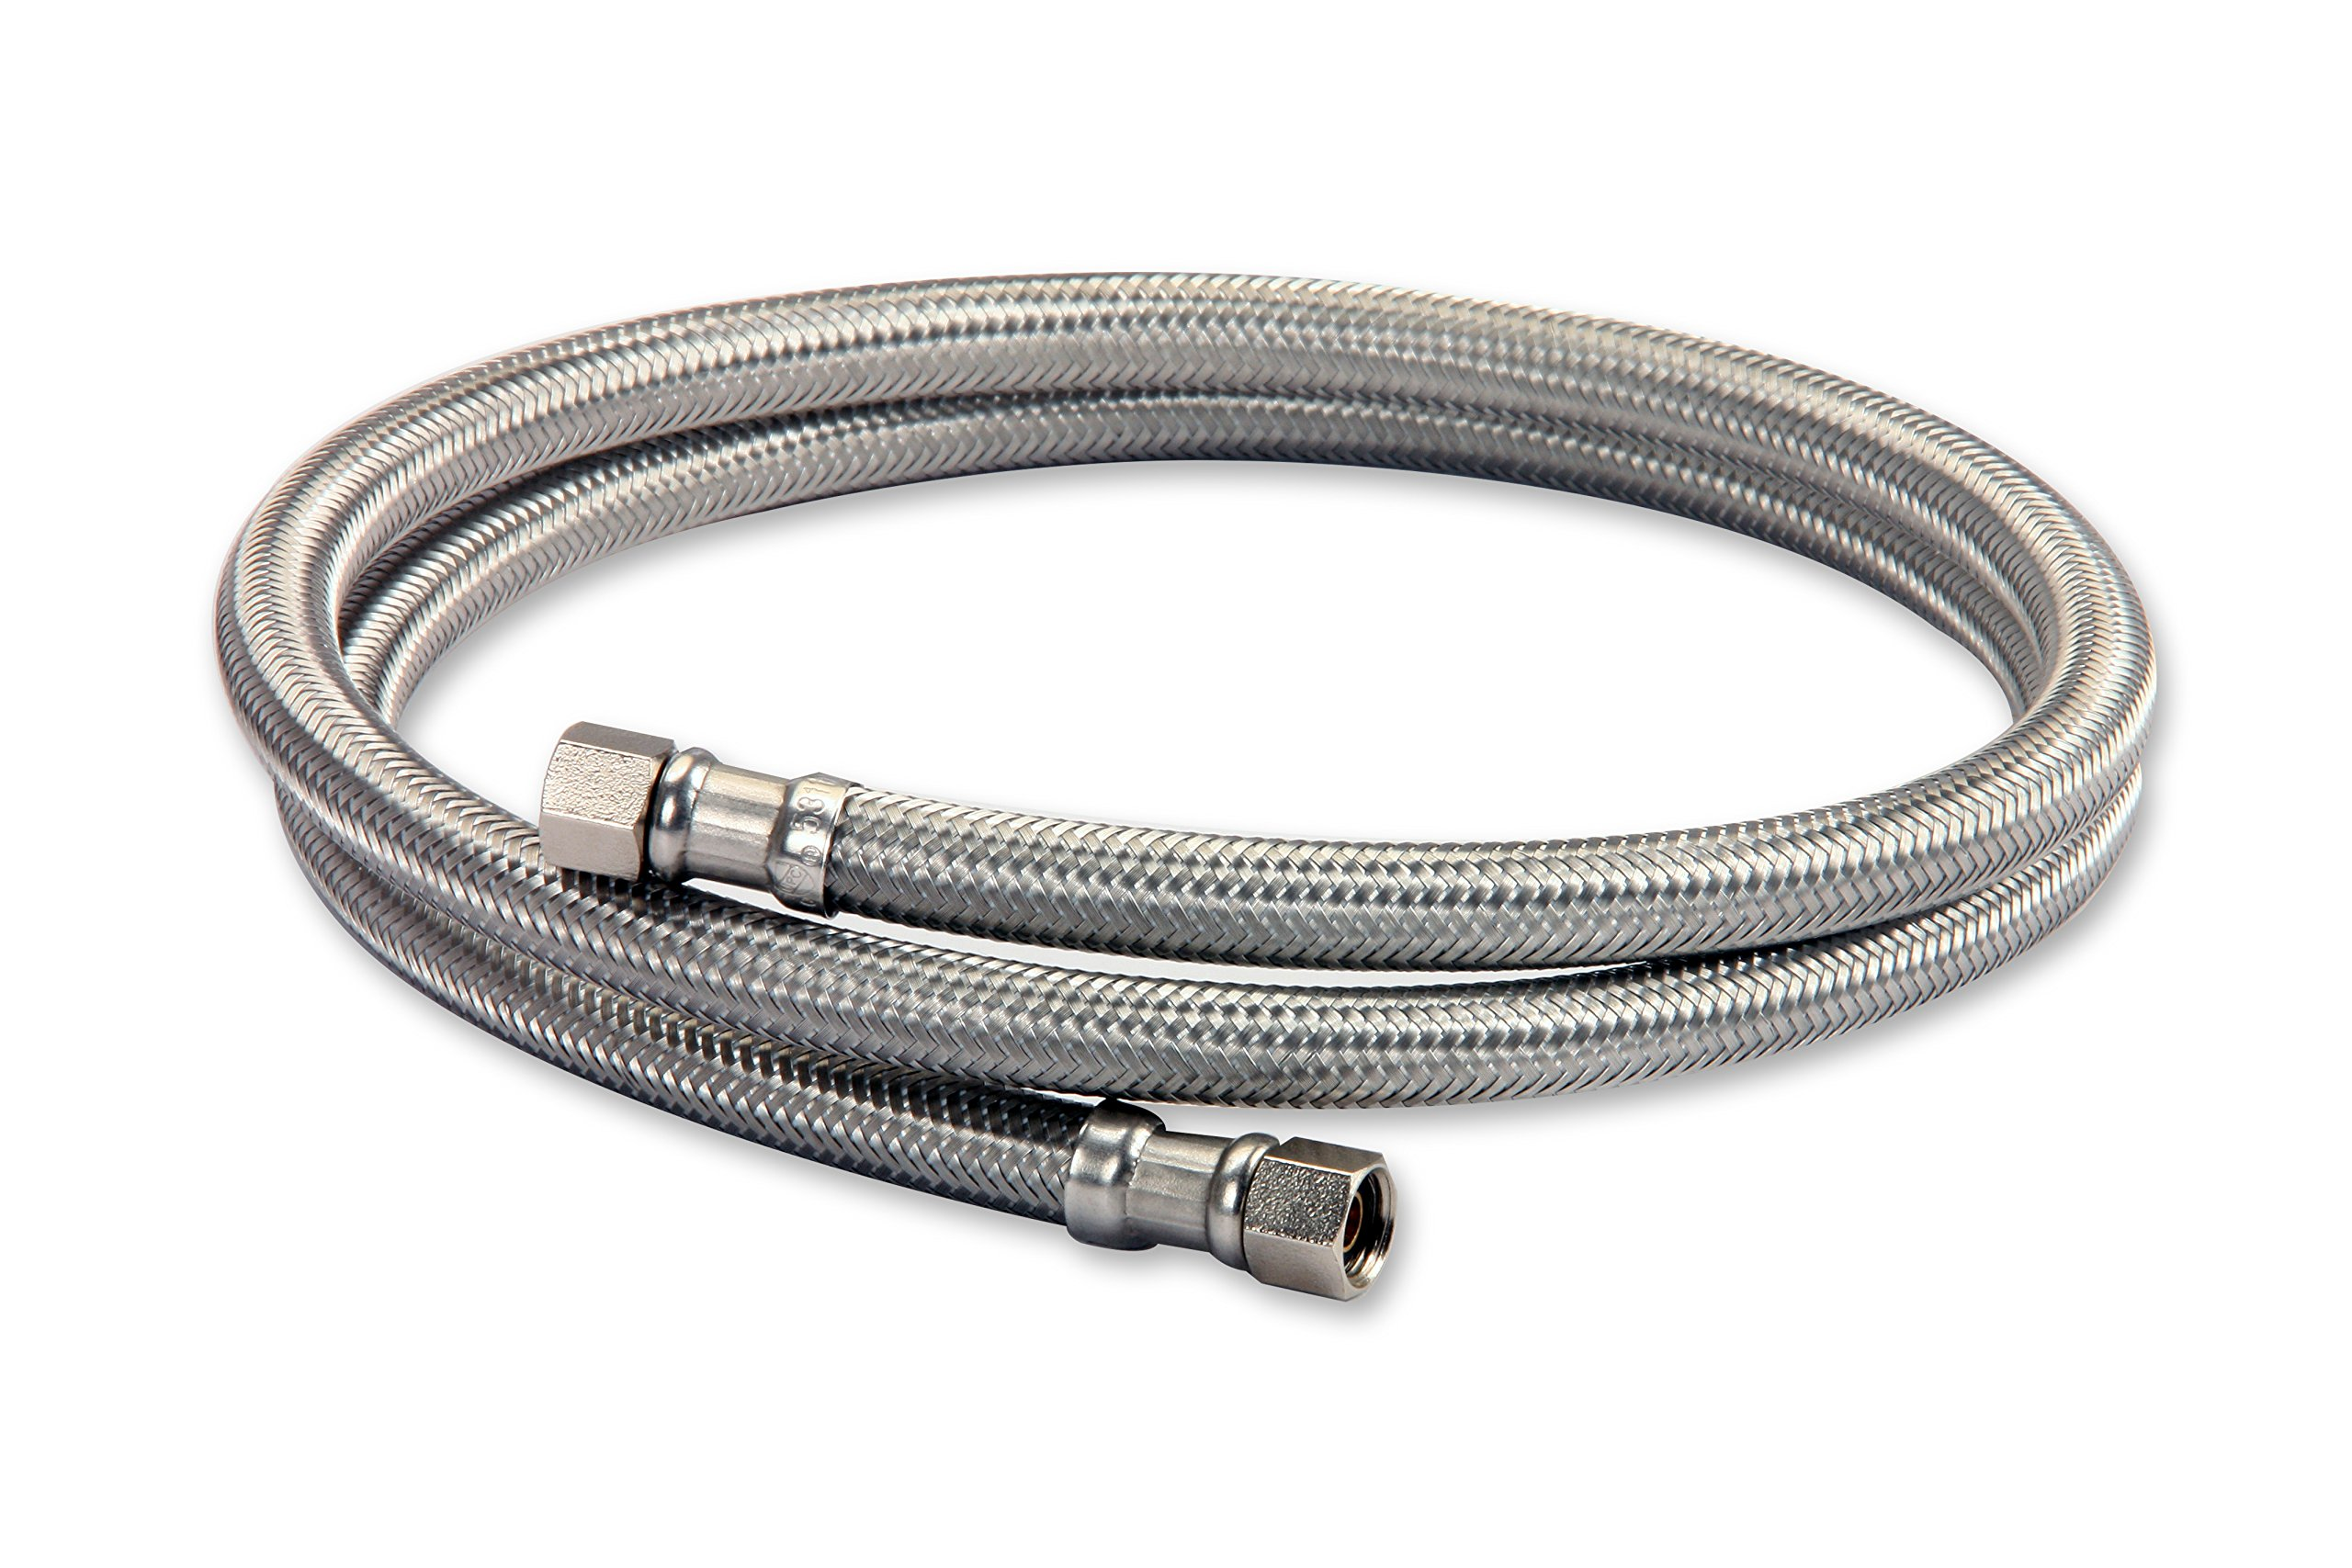 Everflow Supplies 2665-NL Lead Free Stainless Steel Braided Ice Maker Supply Line with Two 1/4'' Fittings on Both Ends, 60''